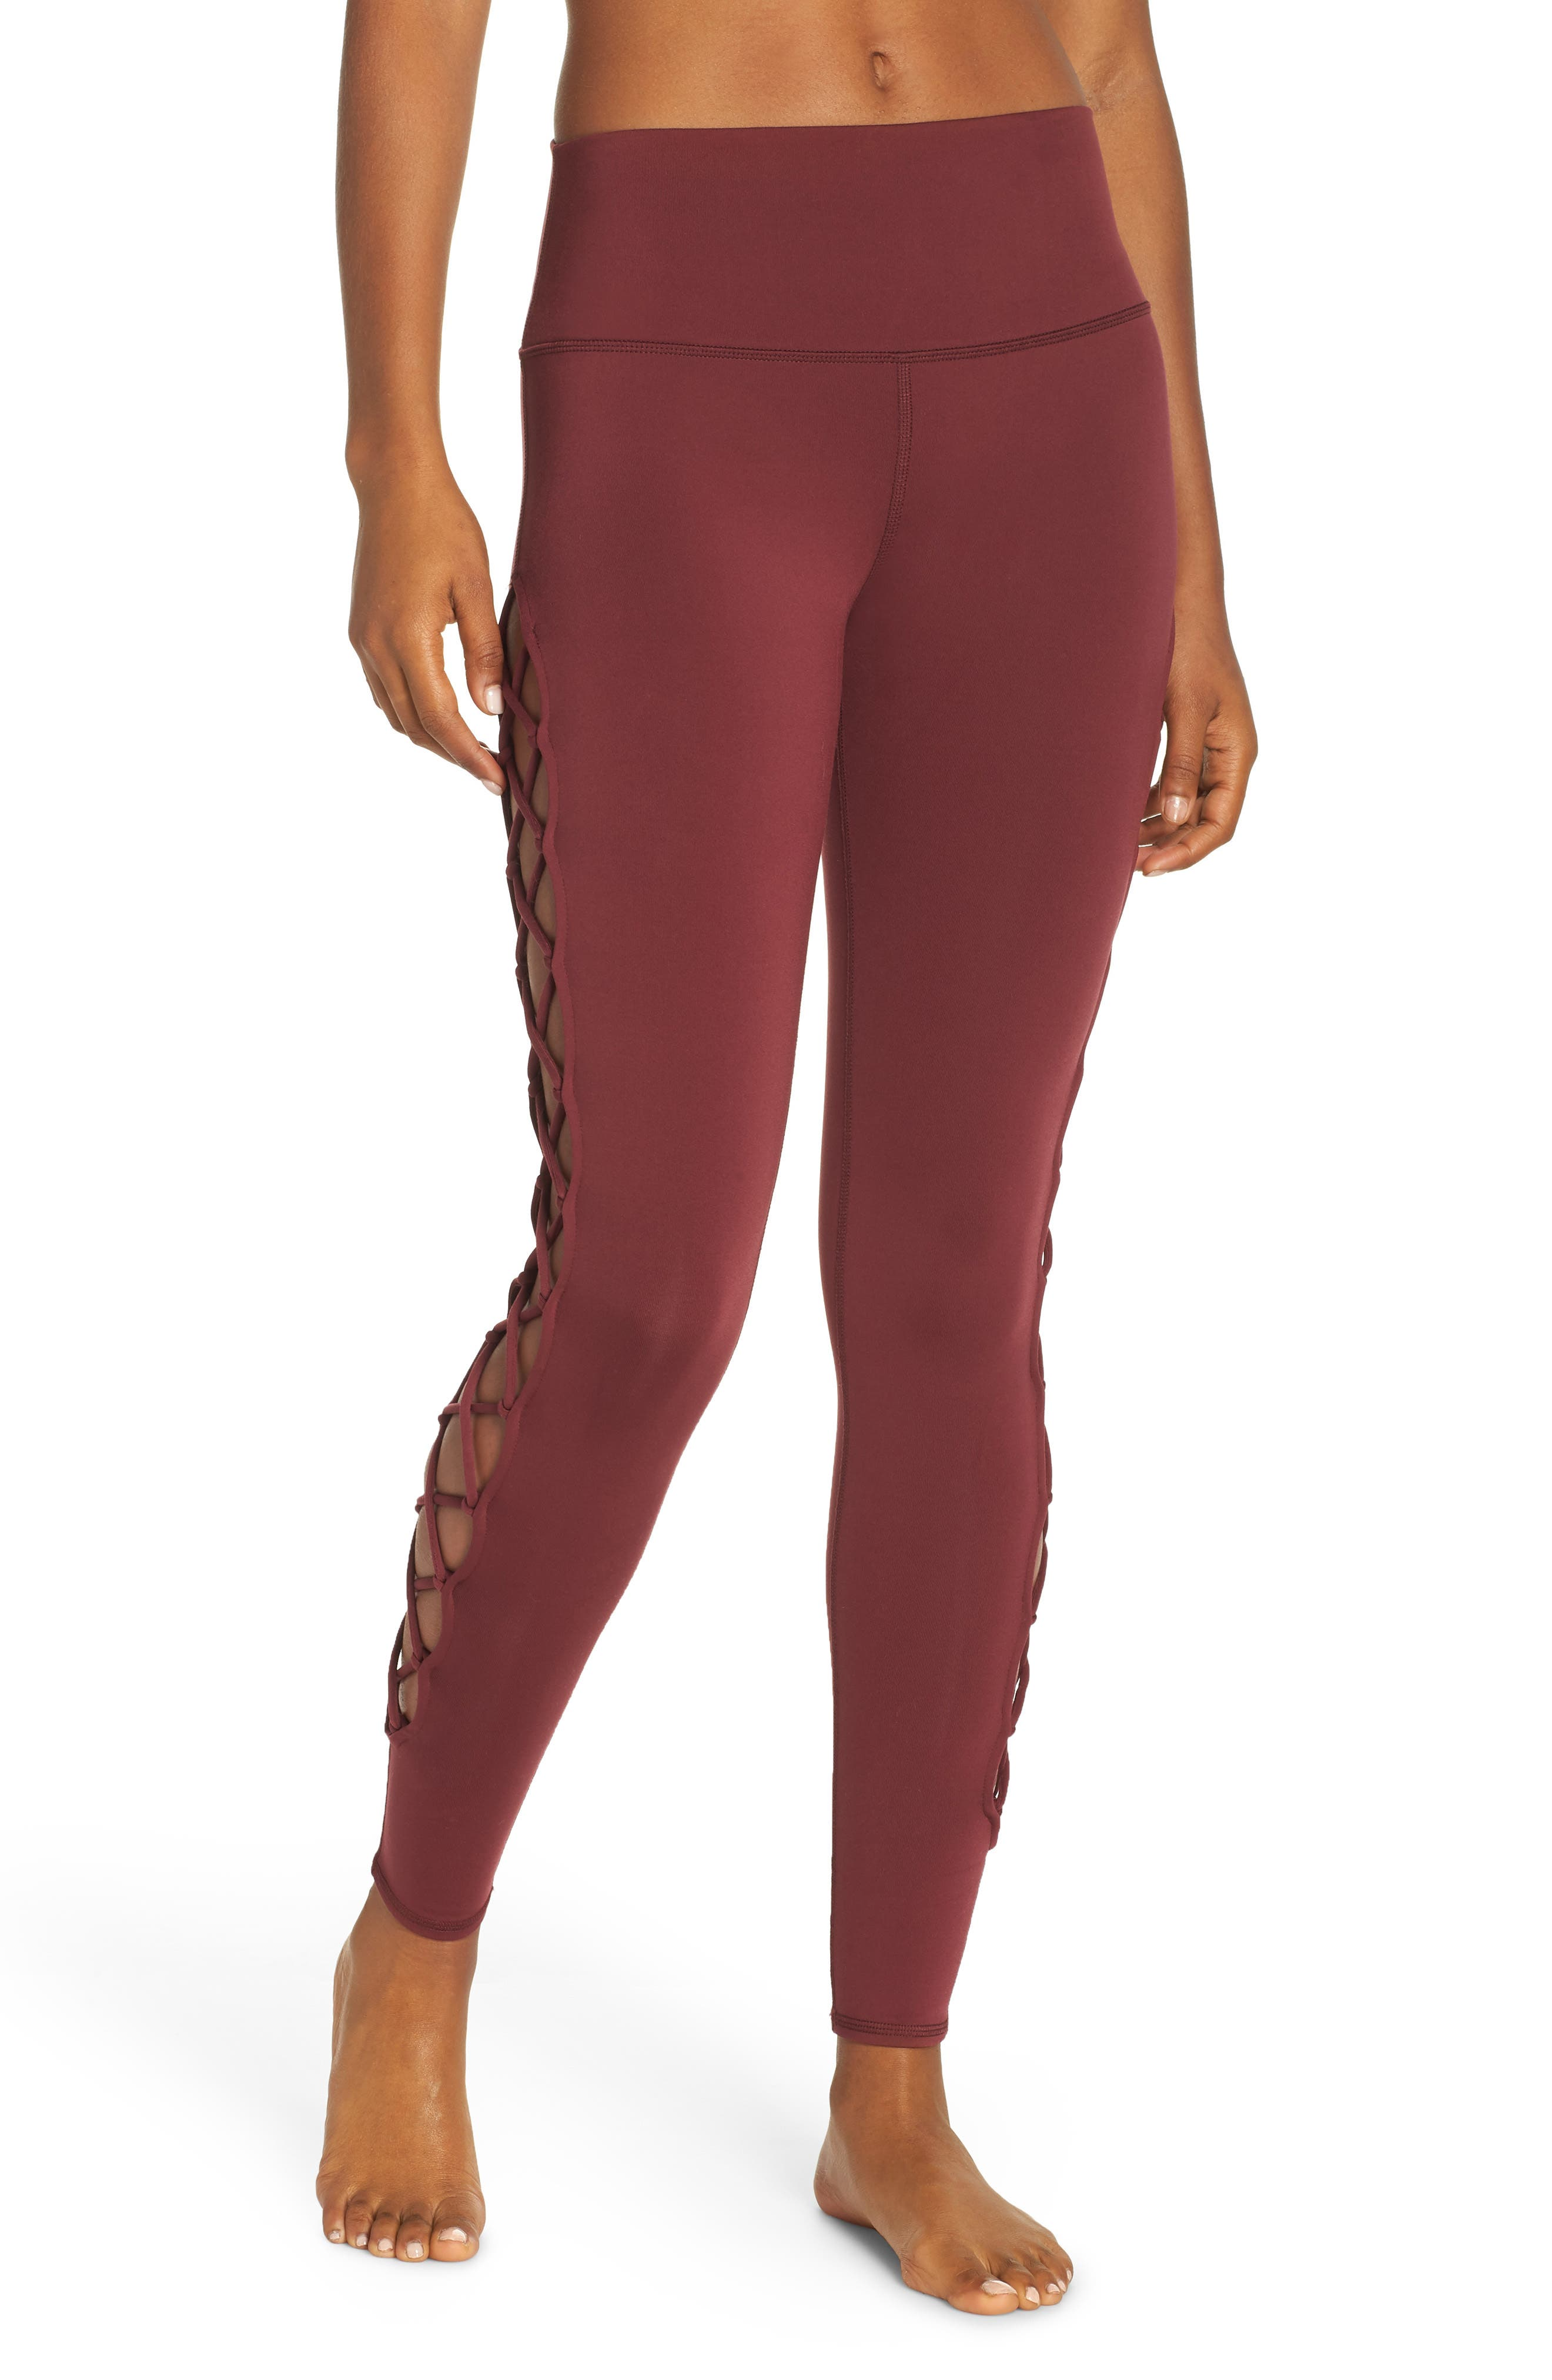 ALO, Interlace Leggings, Main thumbnail 1, color, 936